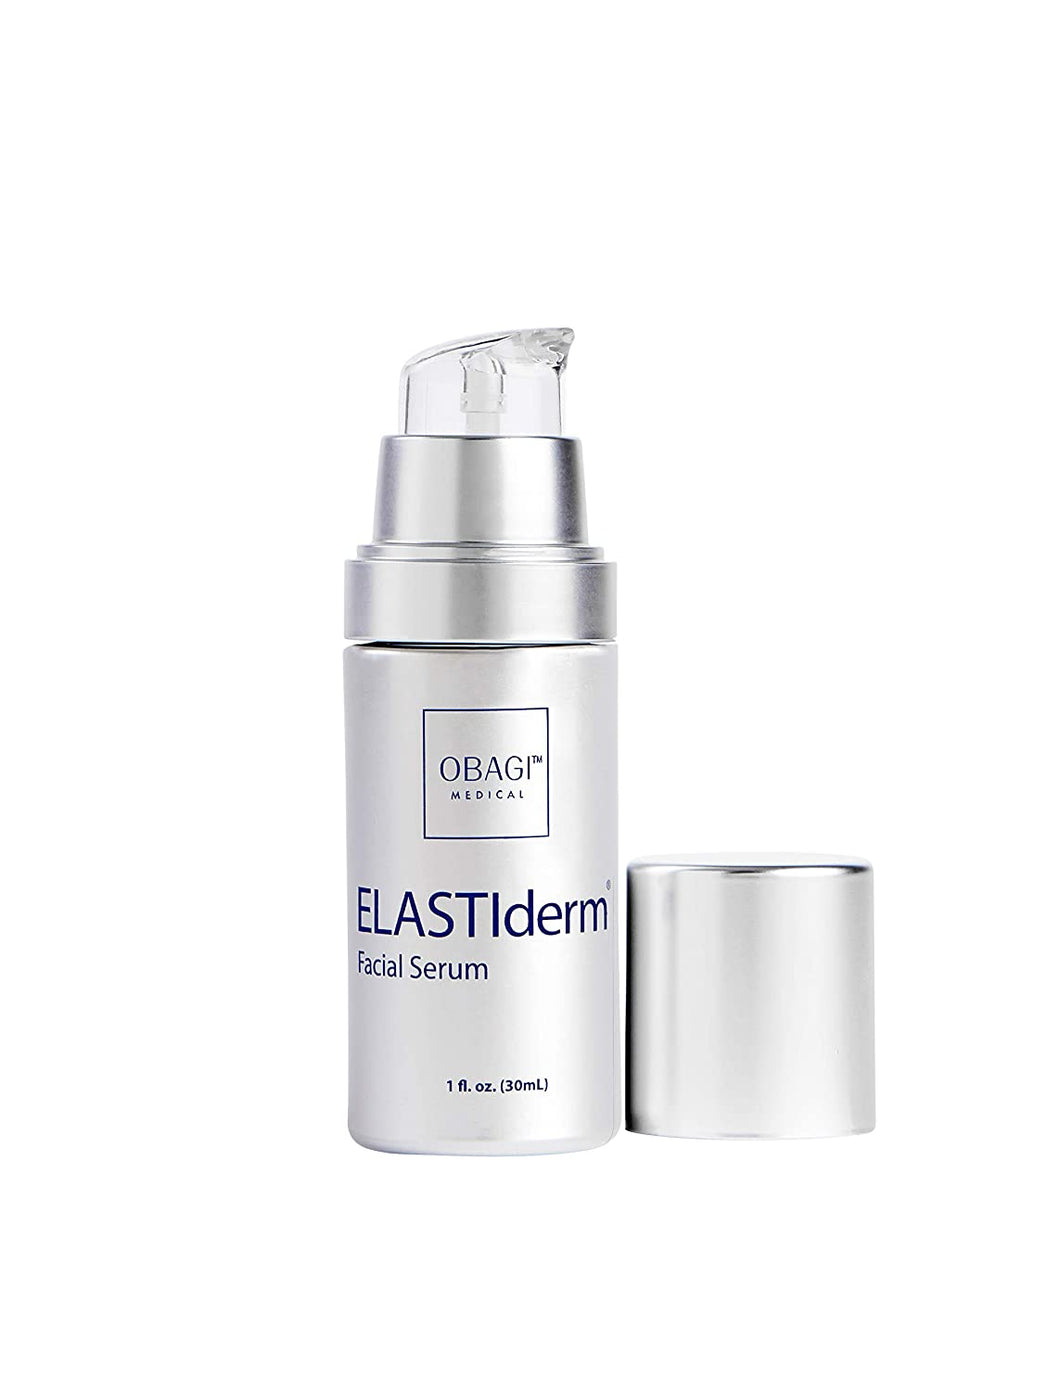 Obagi Elastiderm Facial Serum 1 oz